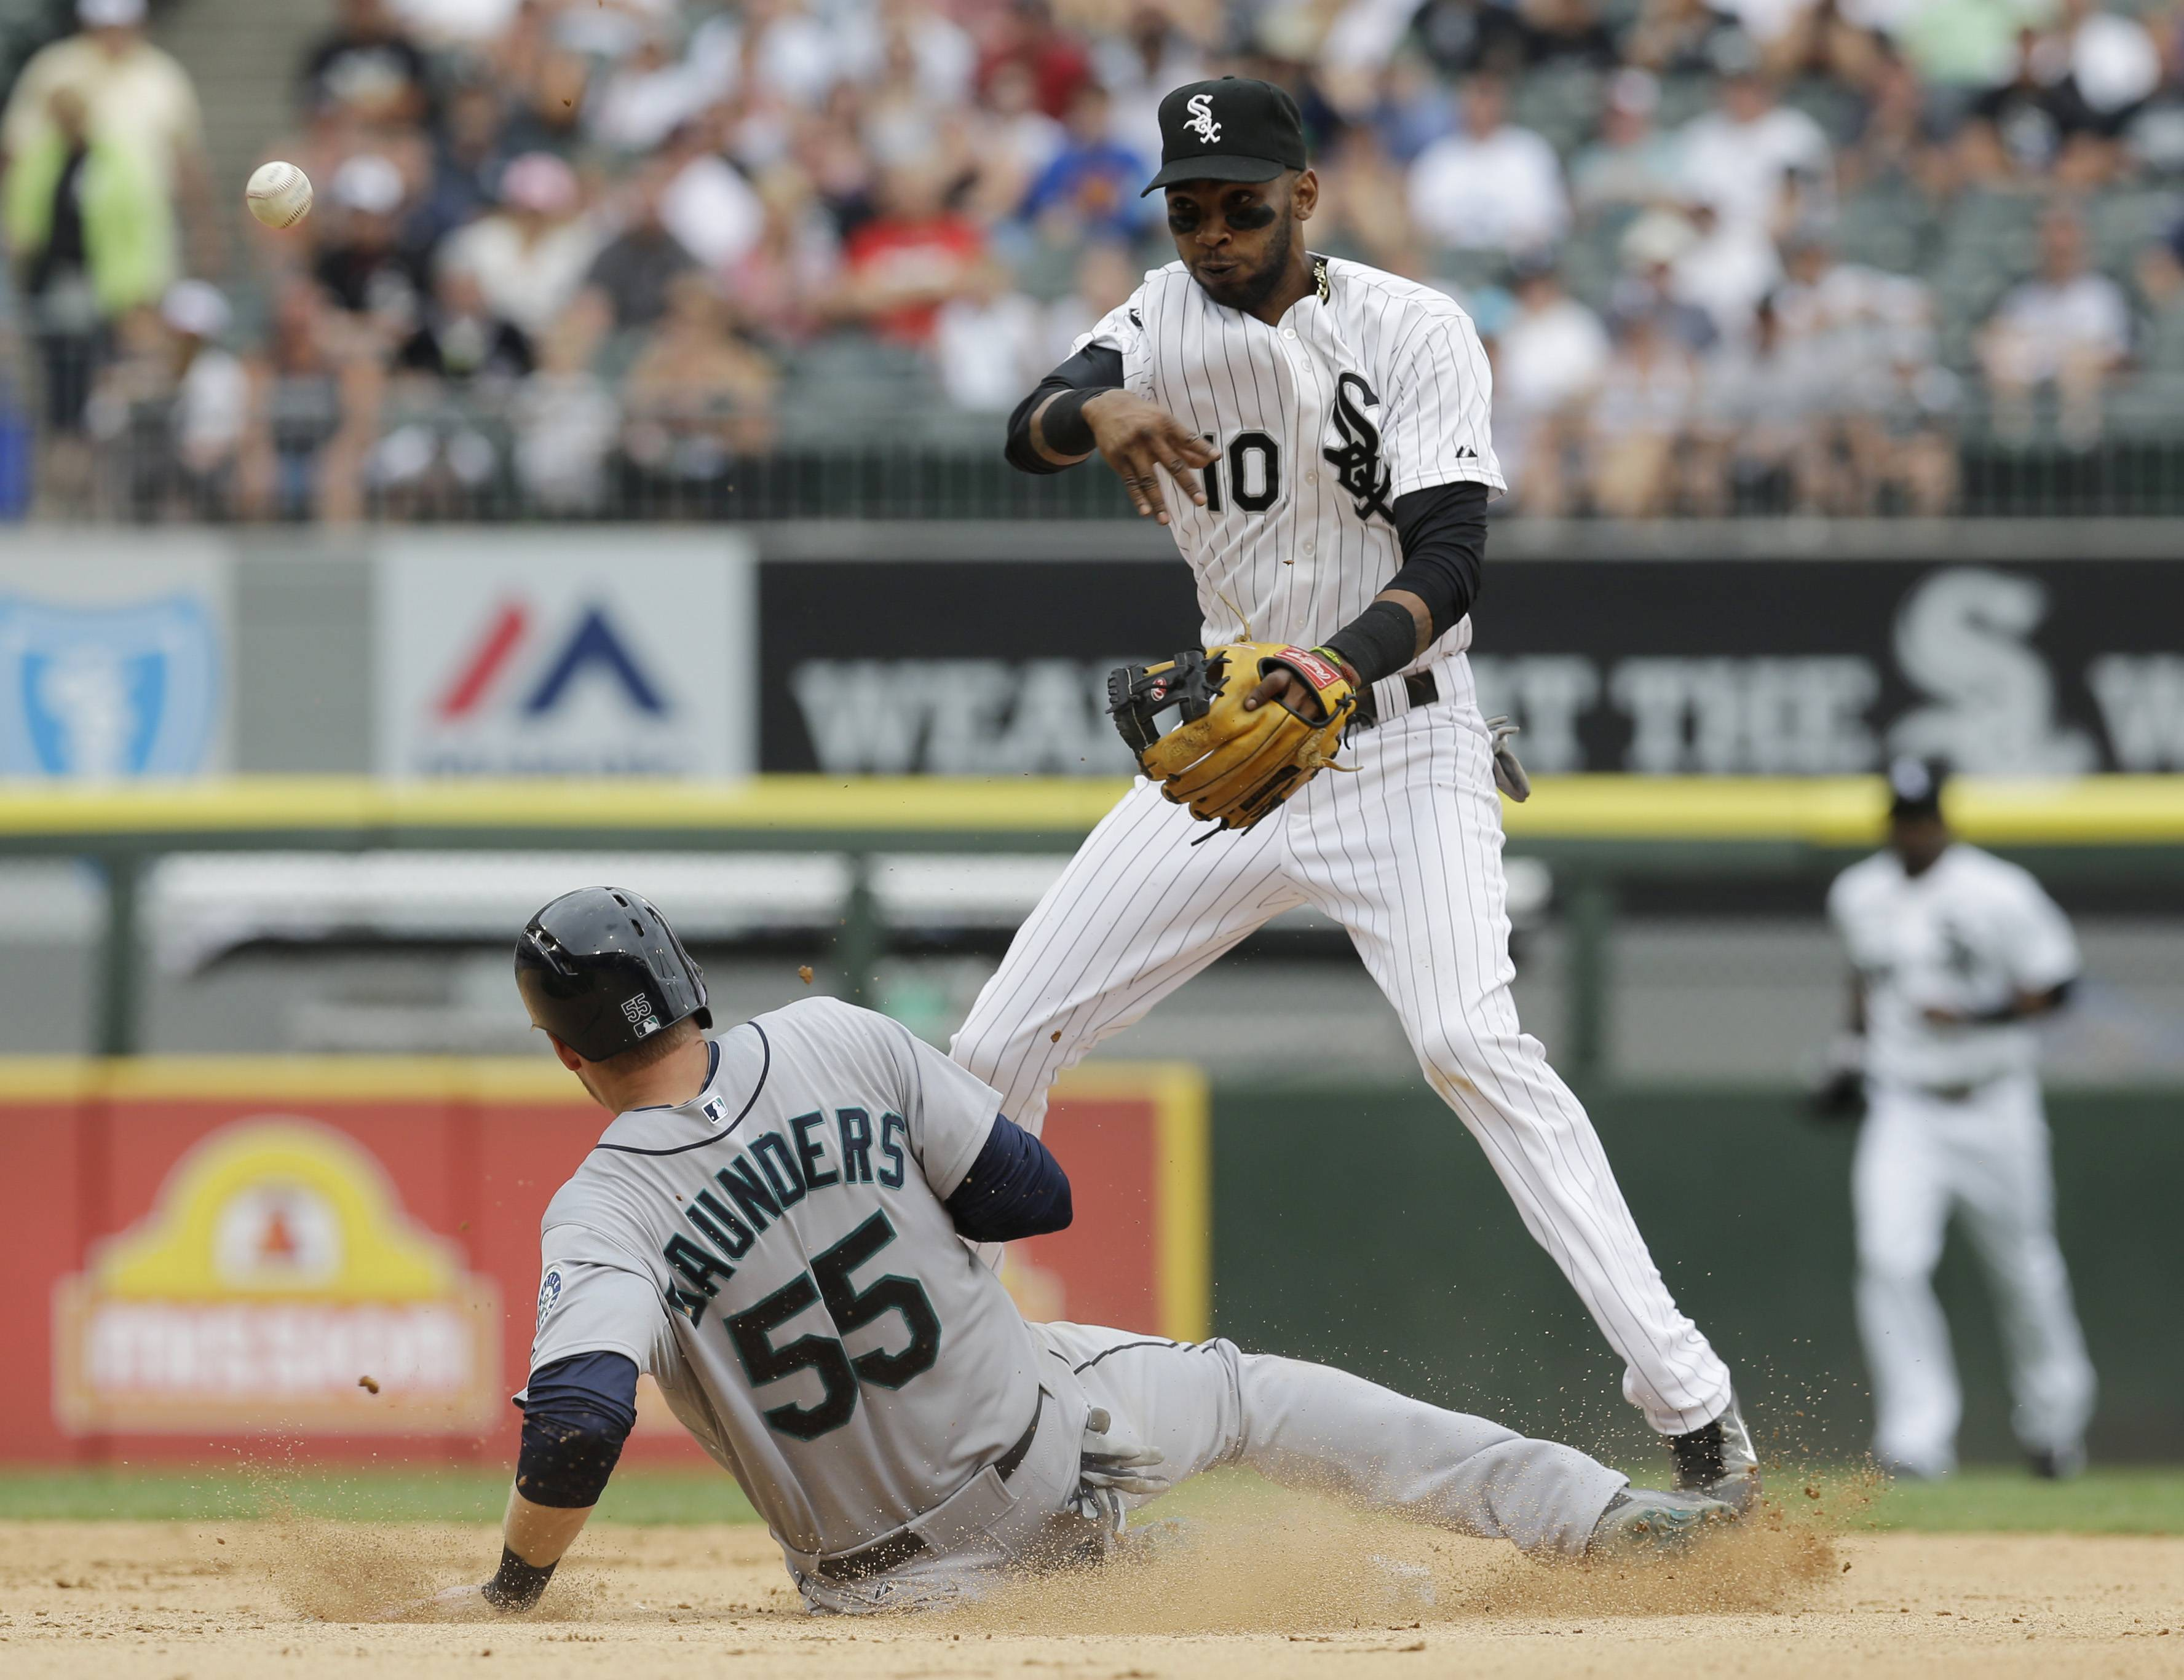 Smooth-field shortstop Alexei Ramirez was selected to his first all-star team Sunday. He's hitting .286 on the year with 8 homers and 41 RBI.